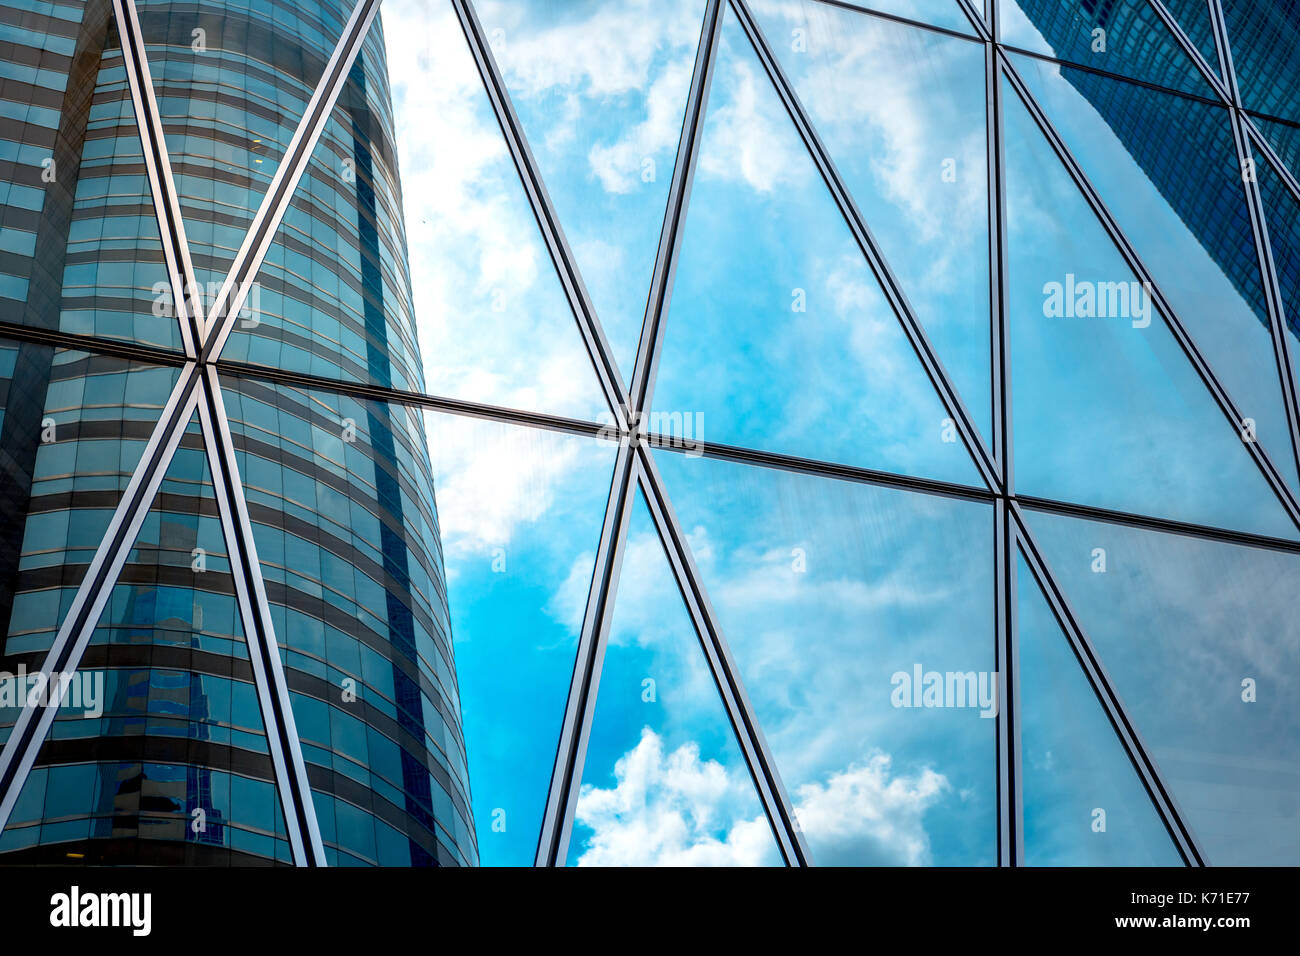 Modern office building detail, glass surface - Stock Image